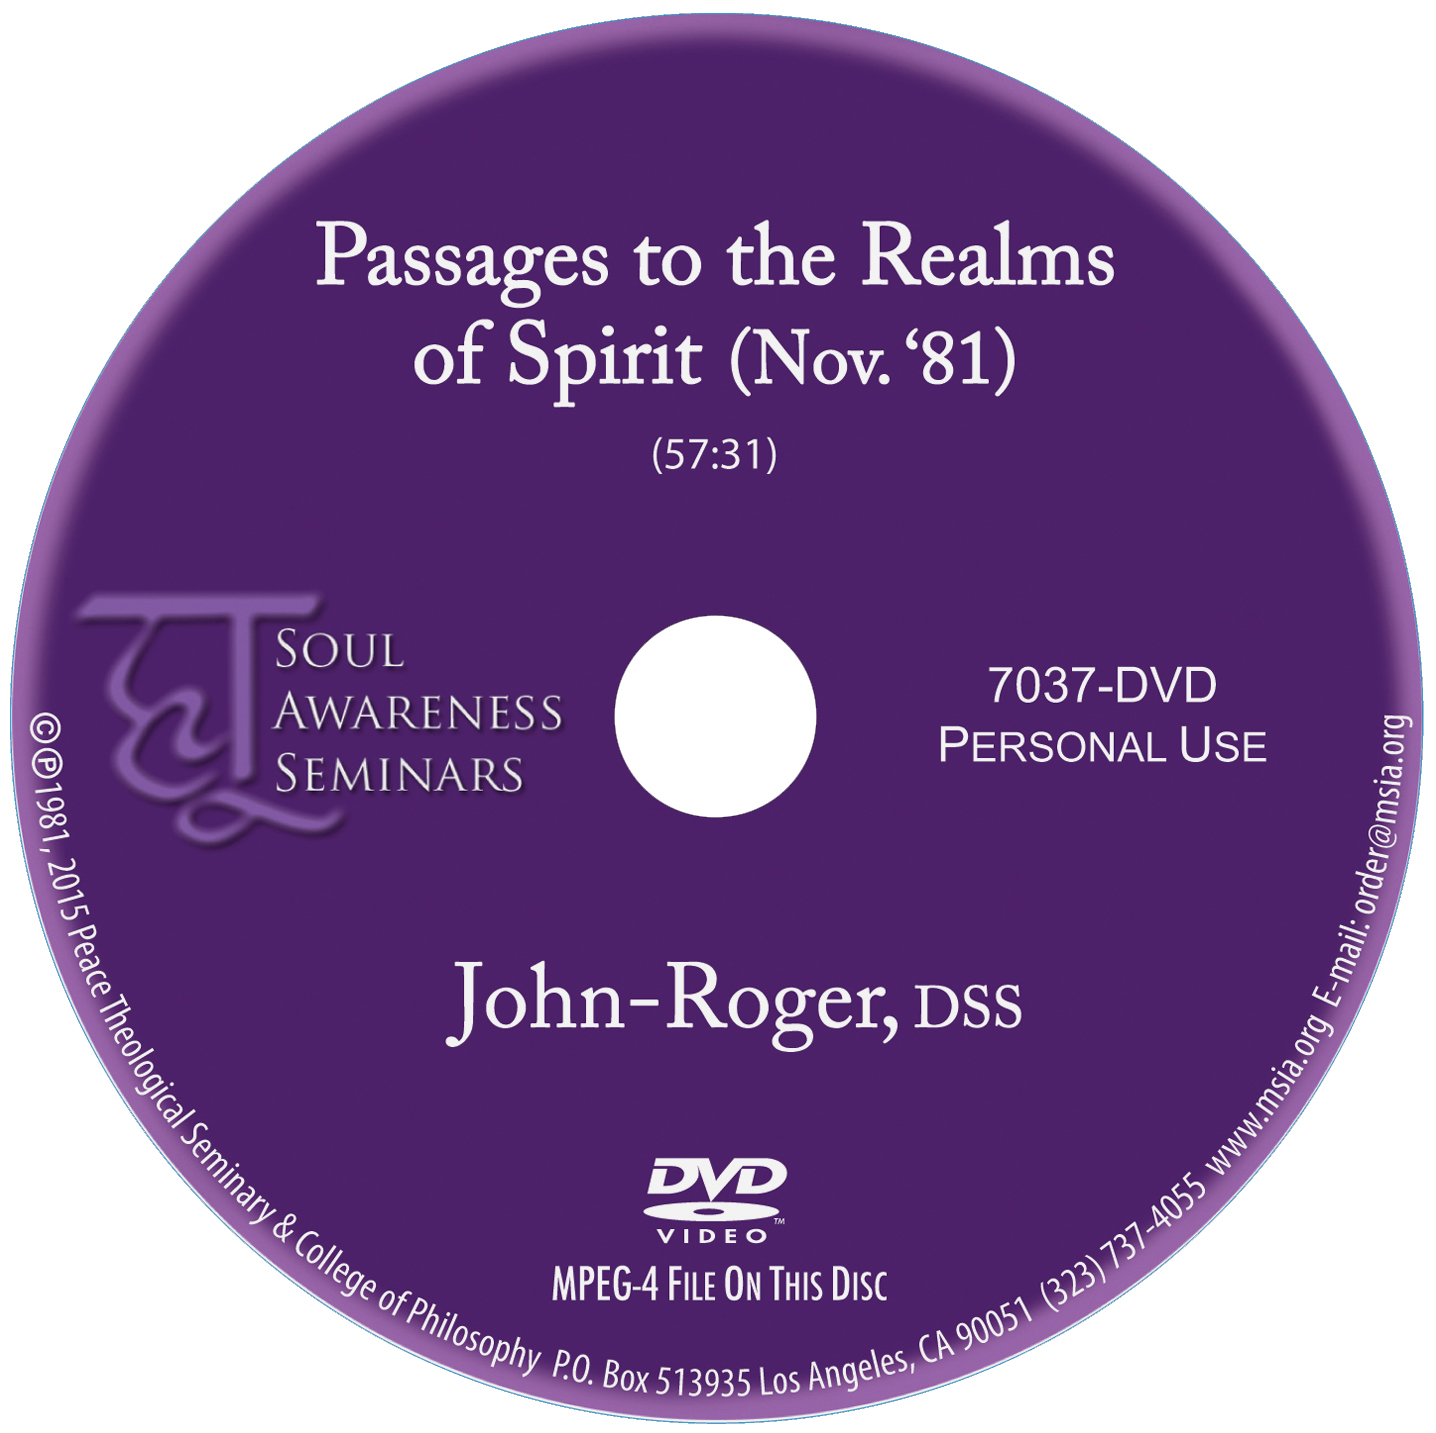 Passages to the Realms of Spirit DVD